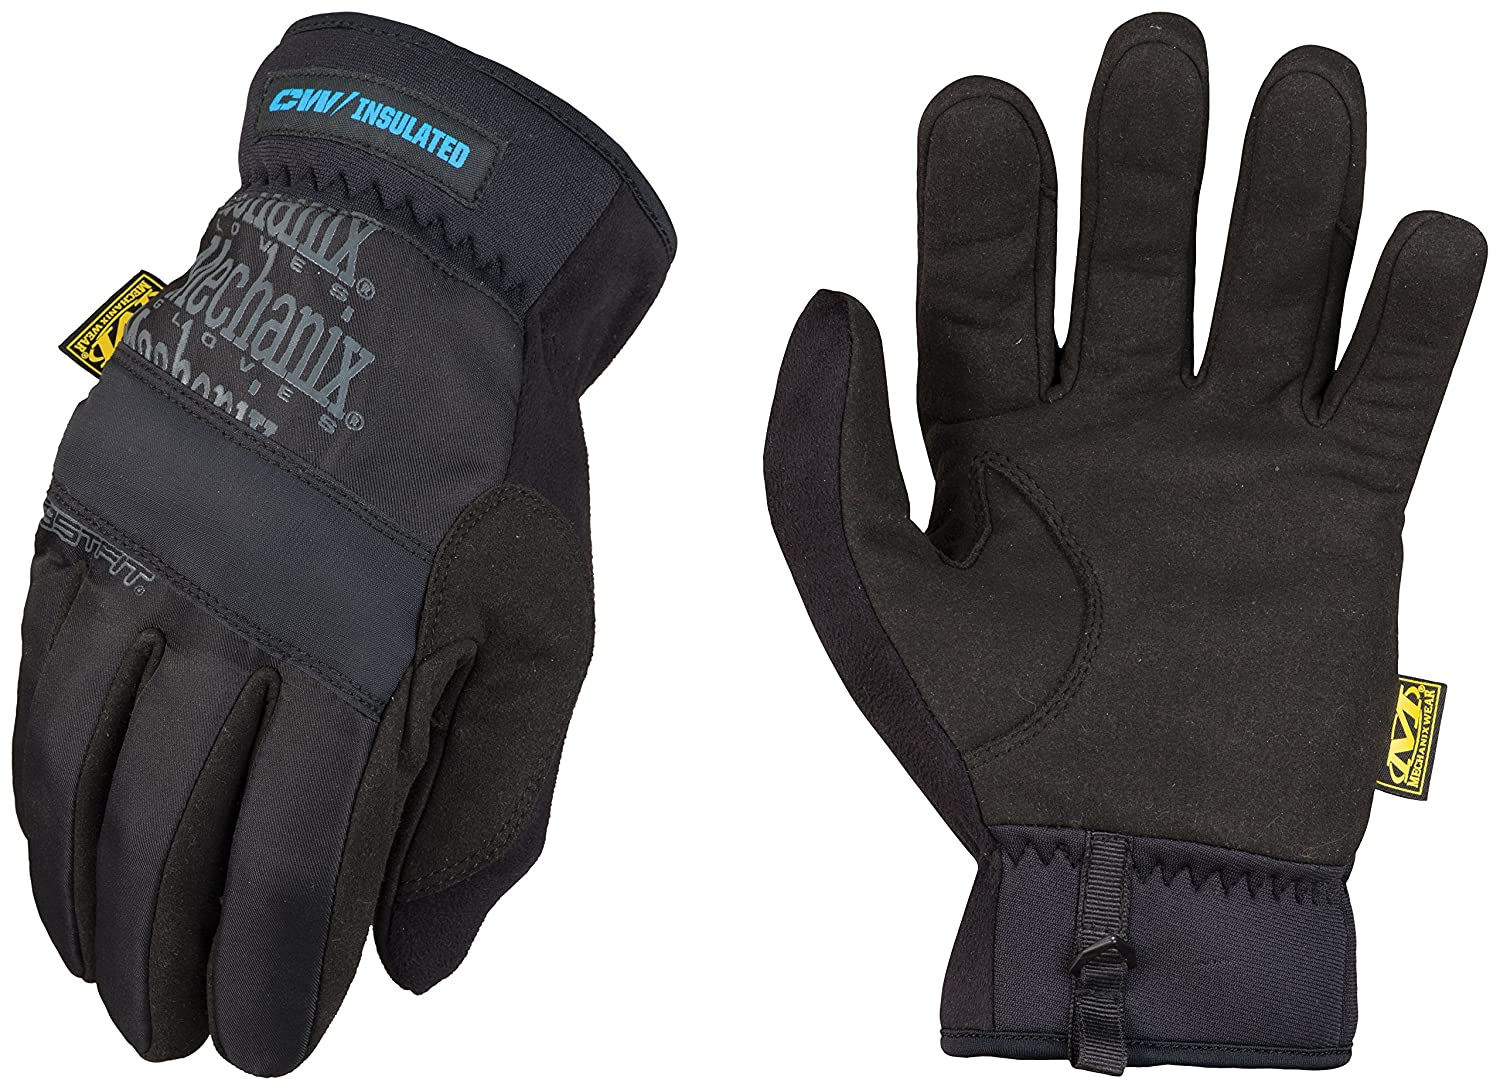 Mechanix Wear - FastFit Insulated Winter Gloves (Small, Black) MFF-95-008